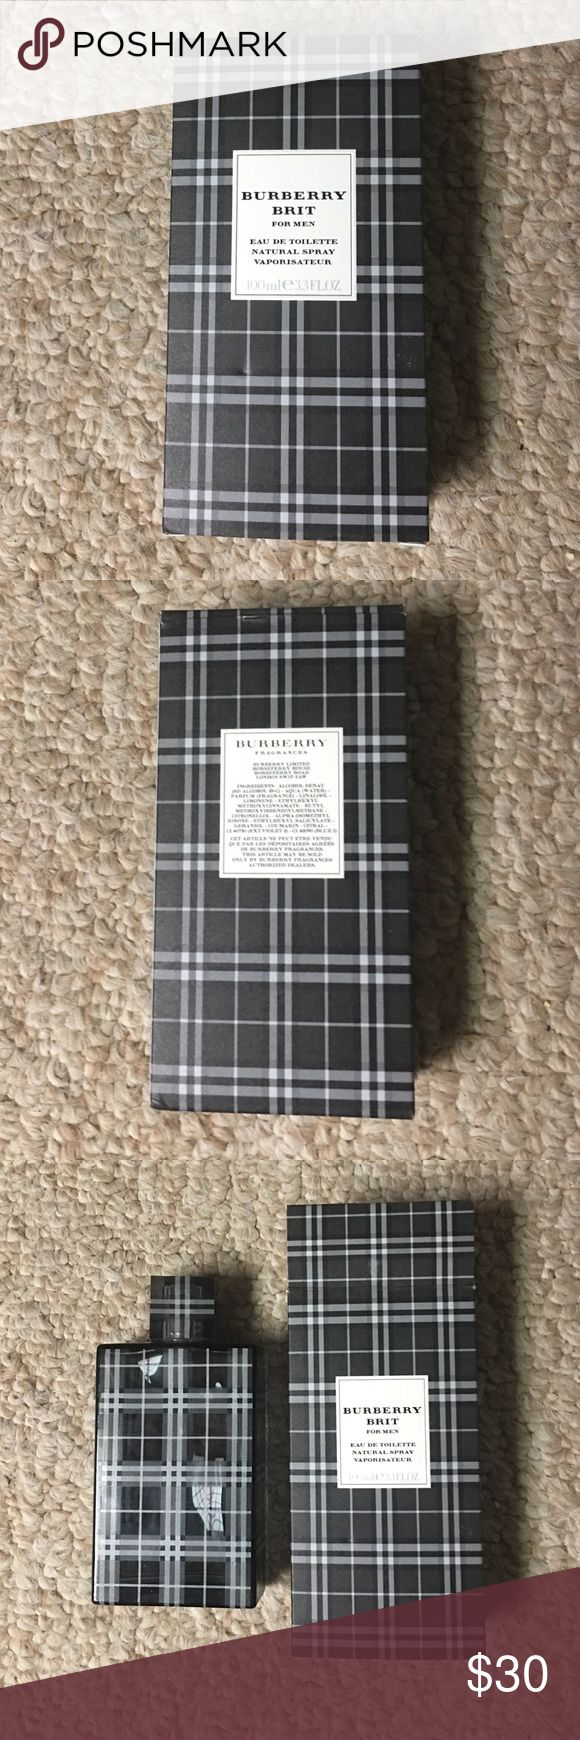 """Burberry Brit for Men Natural Spray 33 FL OZ Bought this for myself about a year ago and my girlfriend told me immediately that she """"hated"""" it, so I only wore it TWICE! This bottle is almost completely full. Burberry Accessories"""